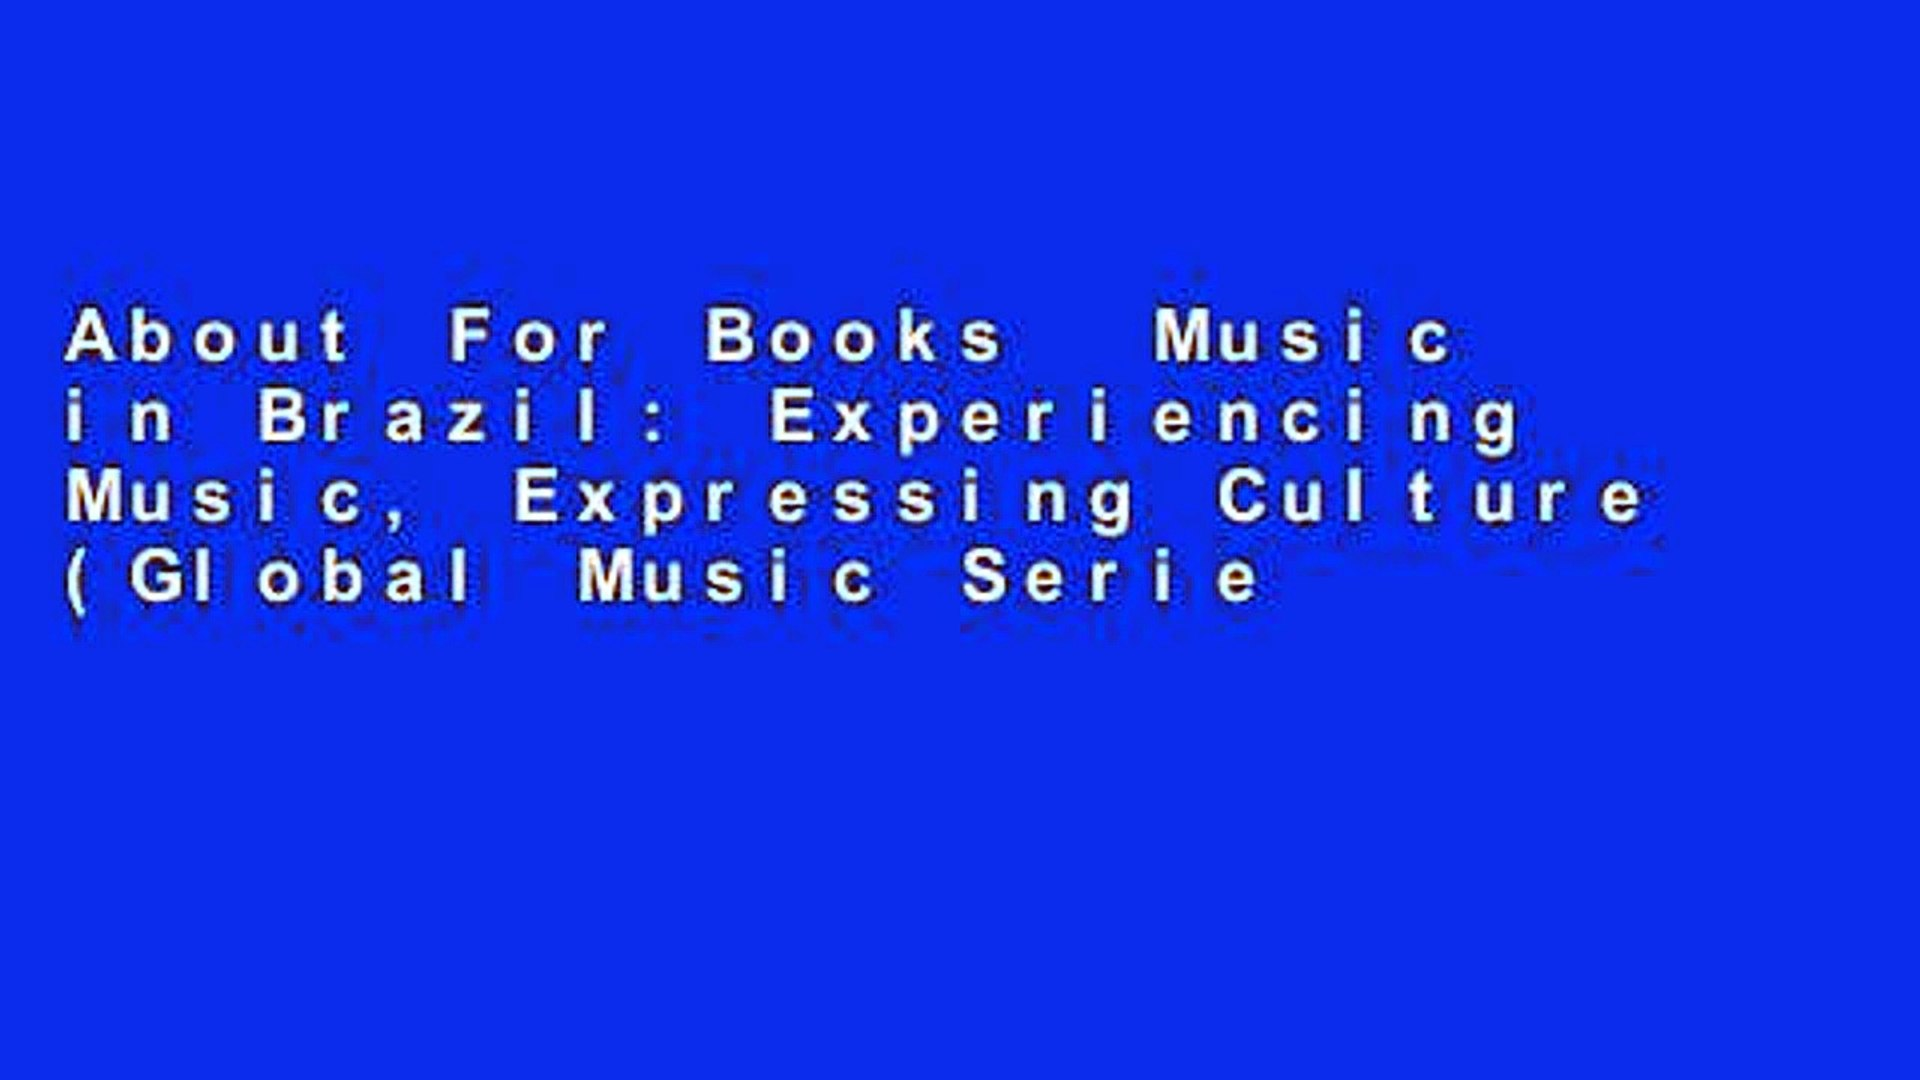 About For Books  Music in Brazil: Experiencing Music, Expressing Culture (Global Music Series)